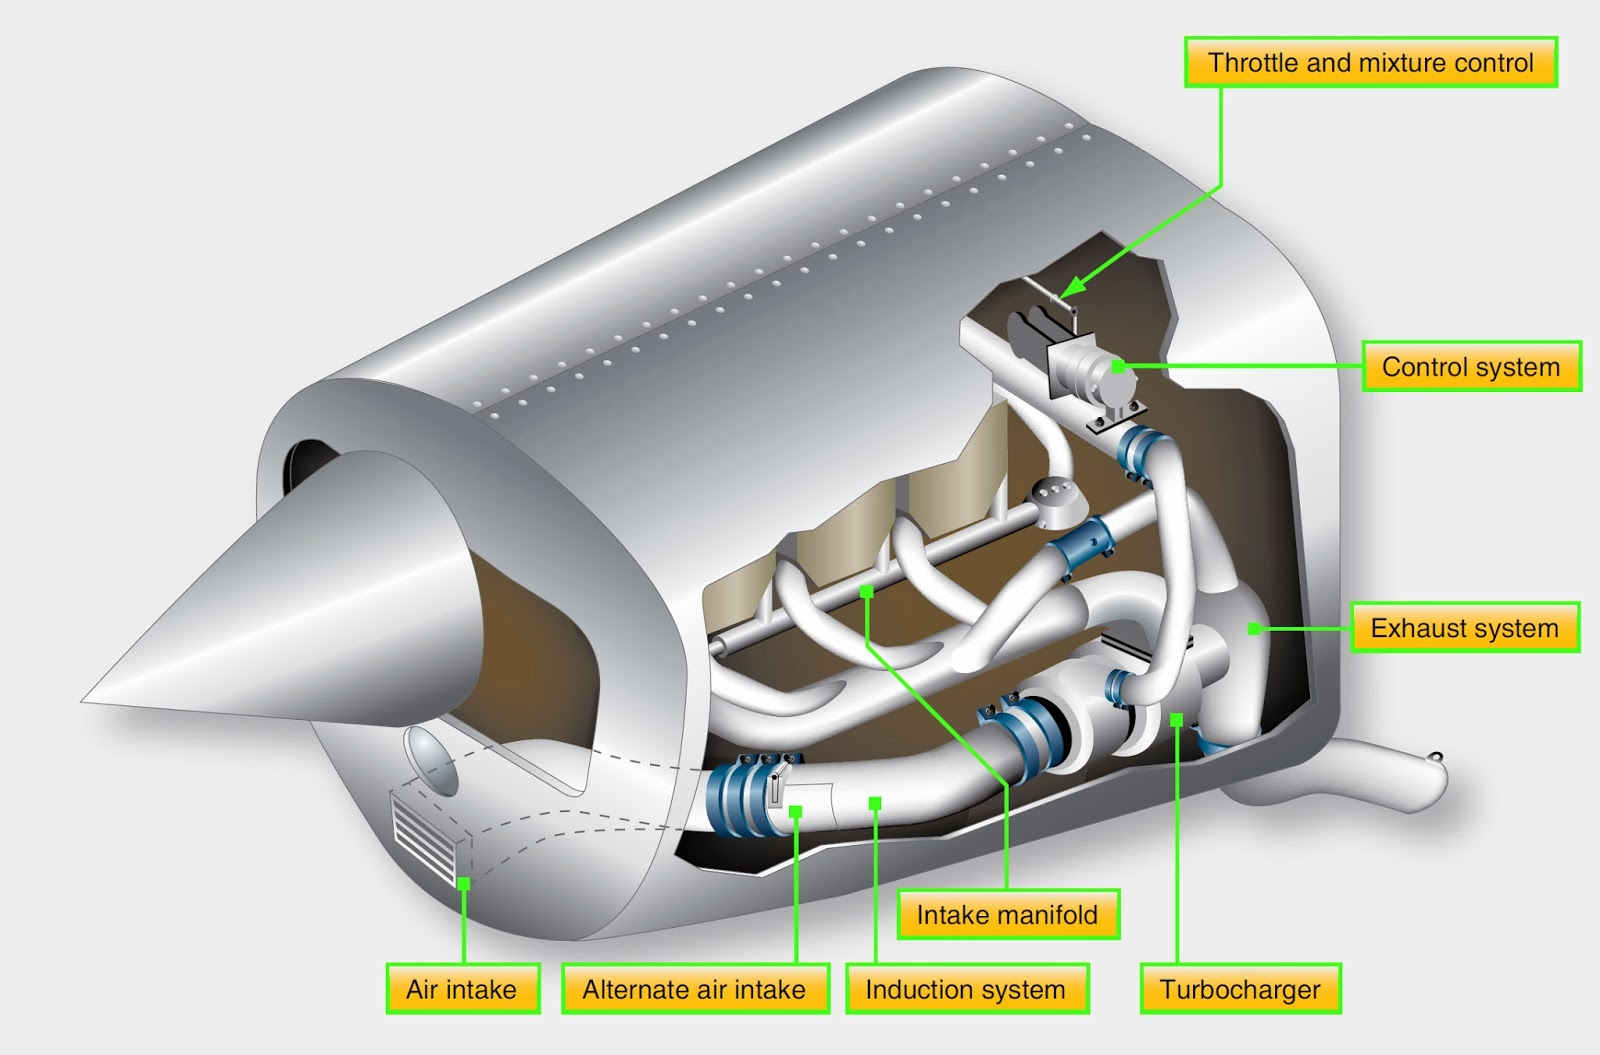 hight resolution of typical location of the air induction and exhaust systems of a normalizing turbocharger system